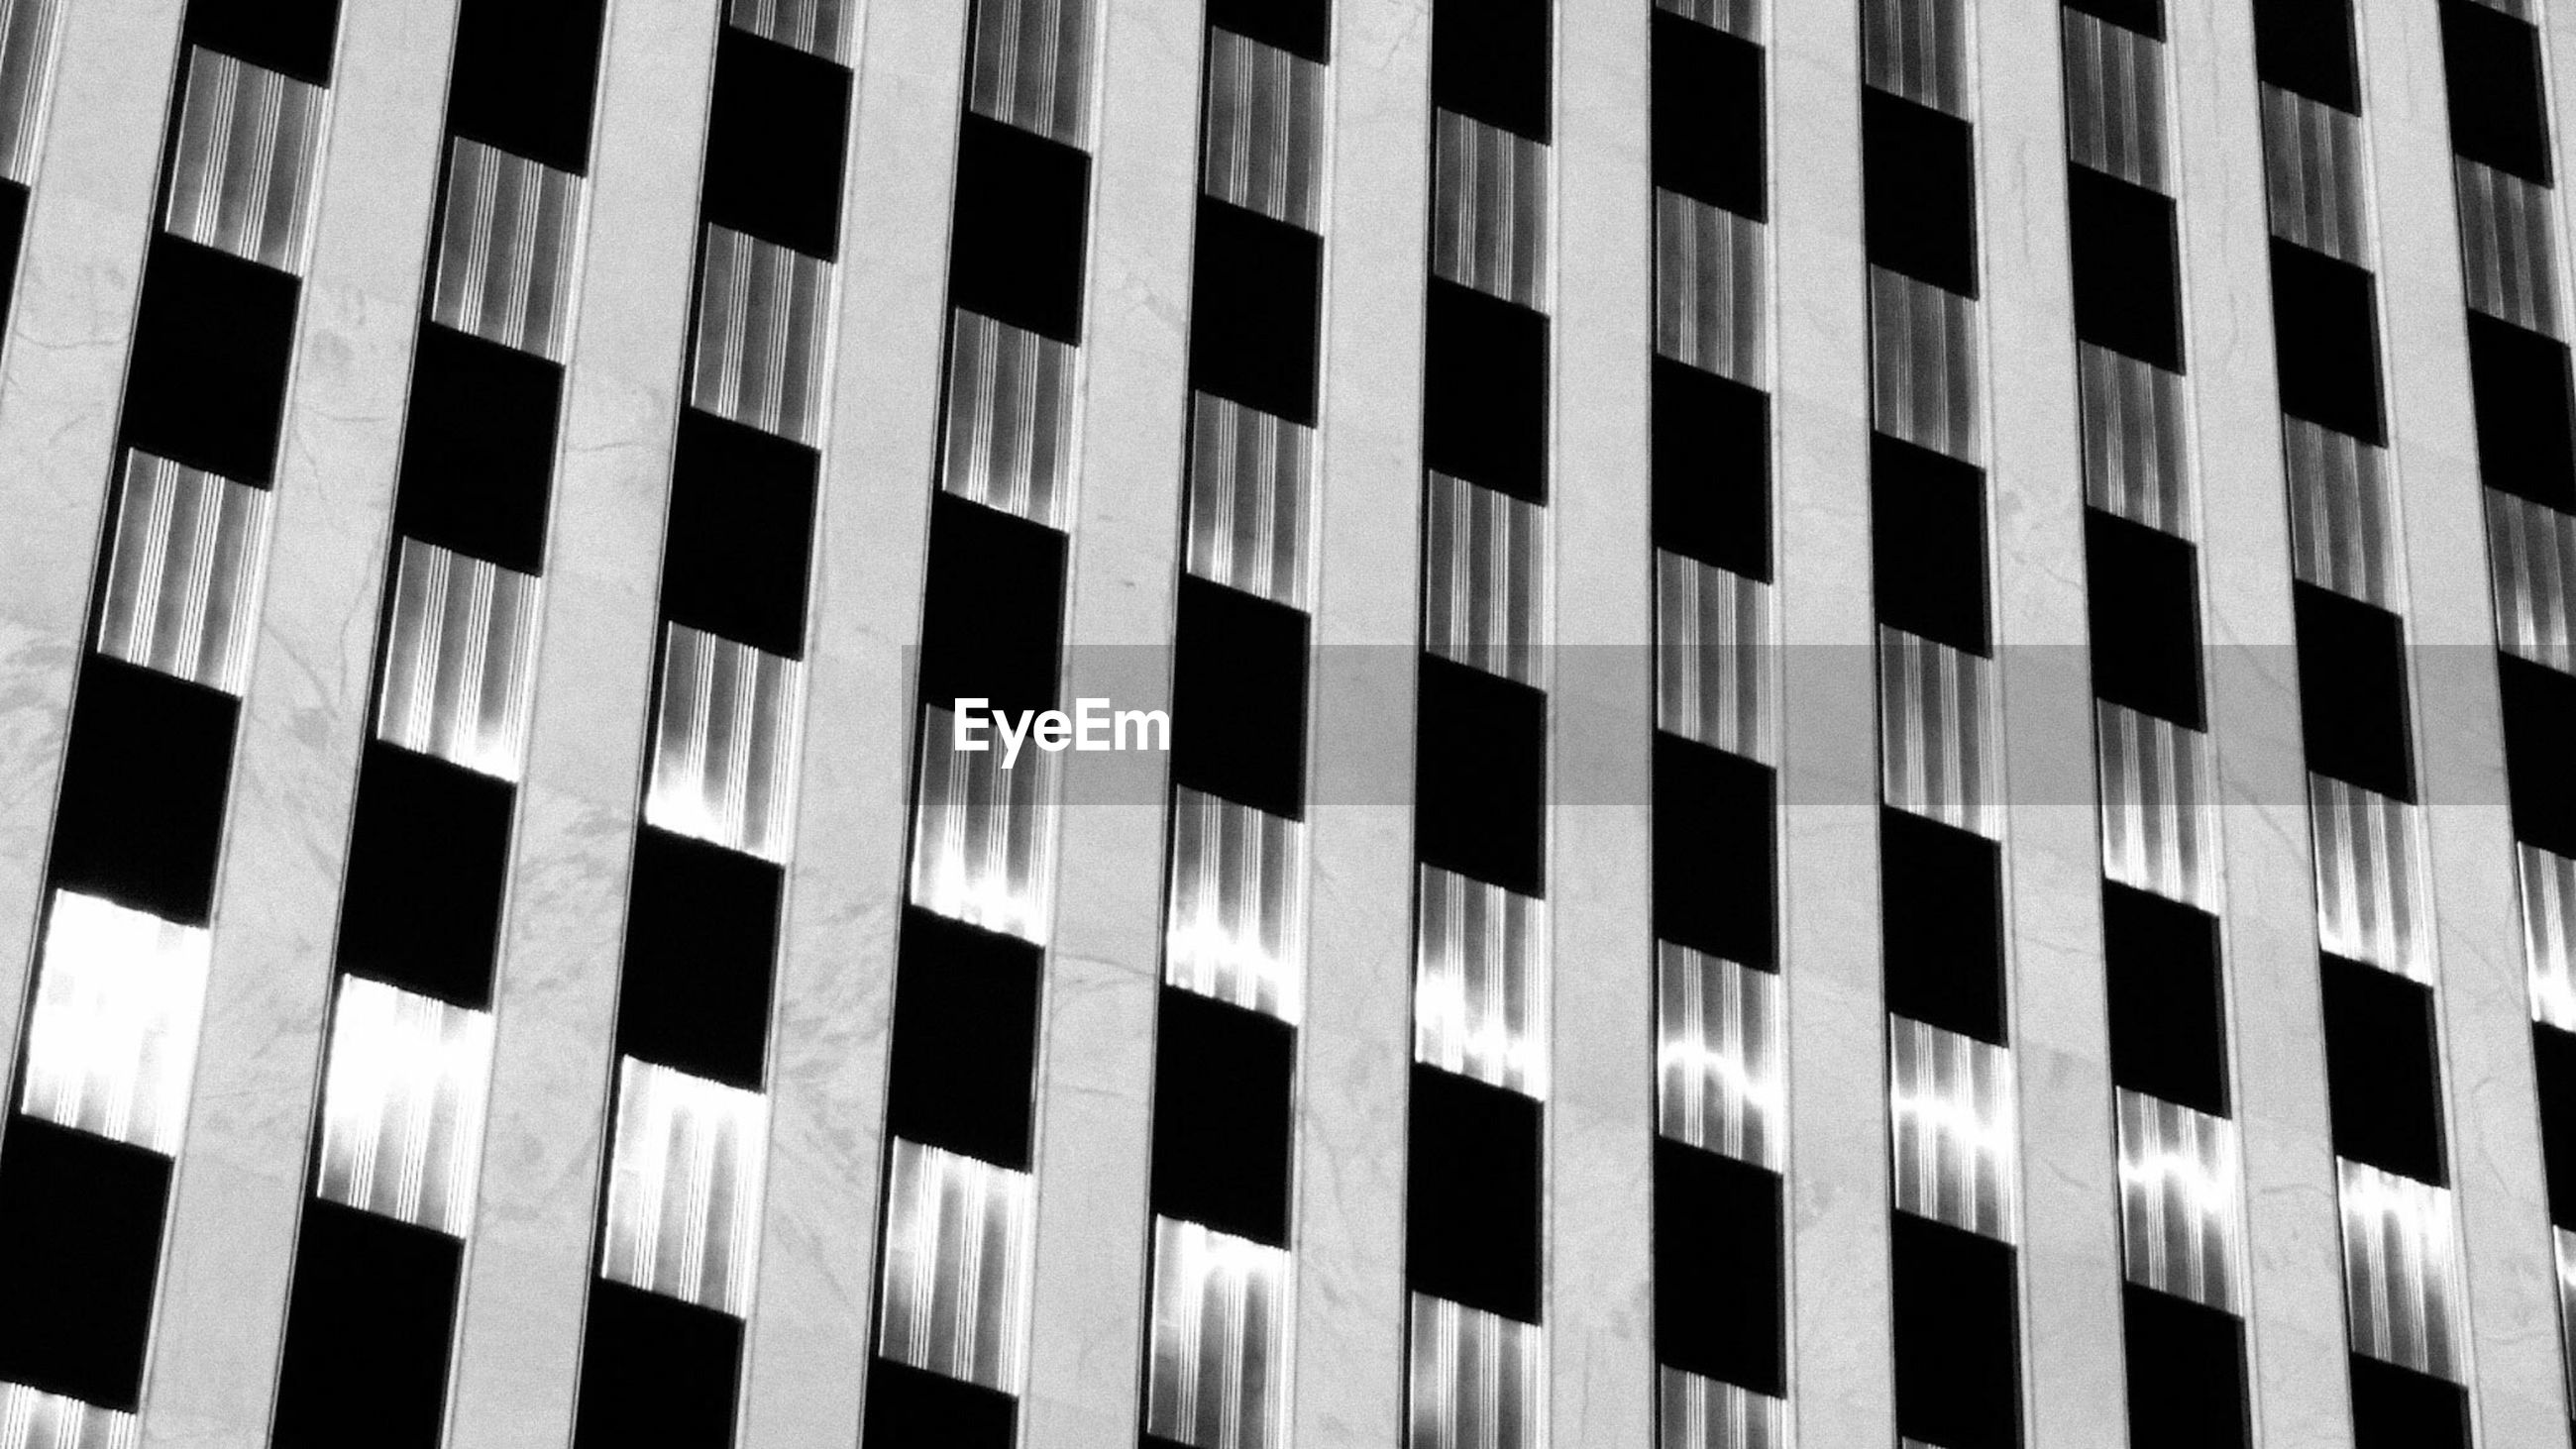 full frame, backgrounds, pattern, repetition, architecture, built structure, building exterior, in a row, textured, no people, design, abstract, window, modern, close-up, low angle view, building, indoors, geometric shape